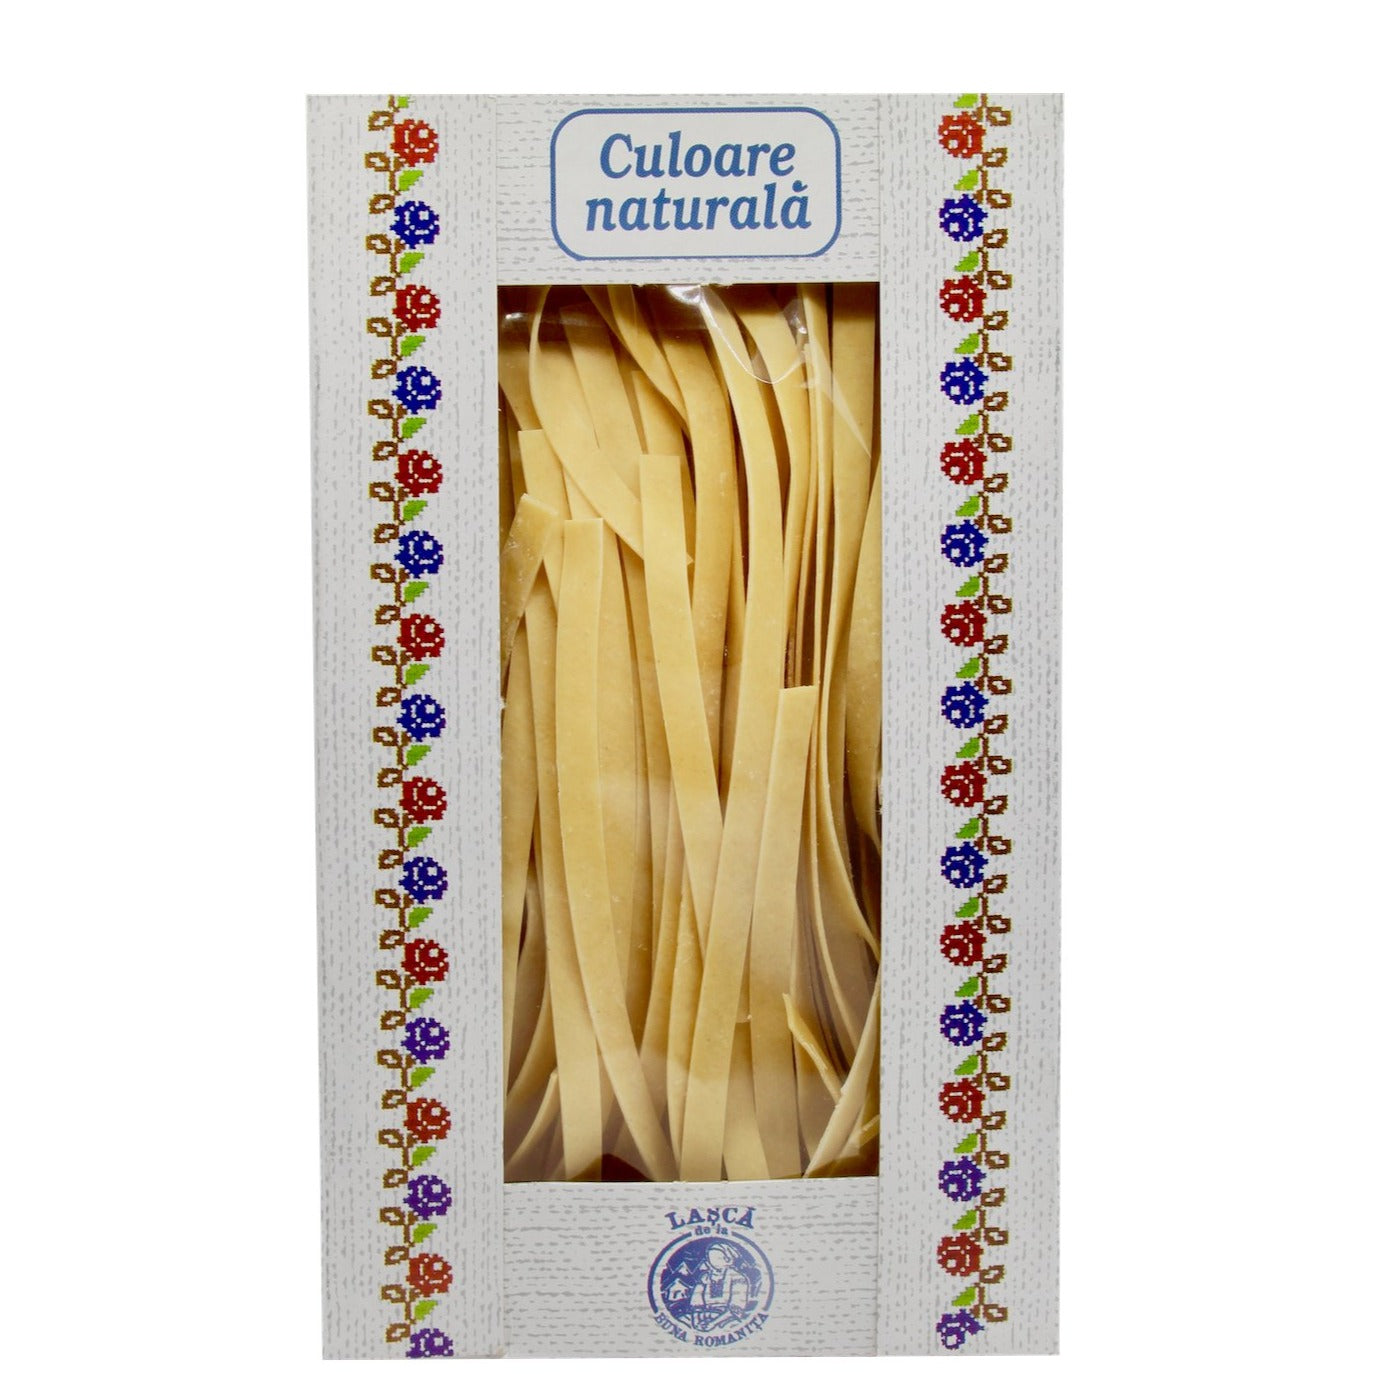 Wide noodles or pasta, Romanian lasca, 200g box - De Mana